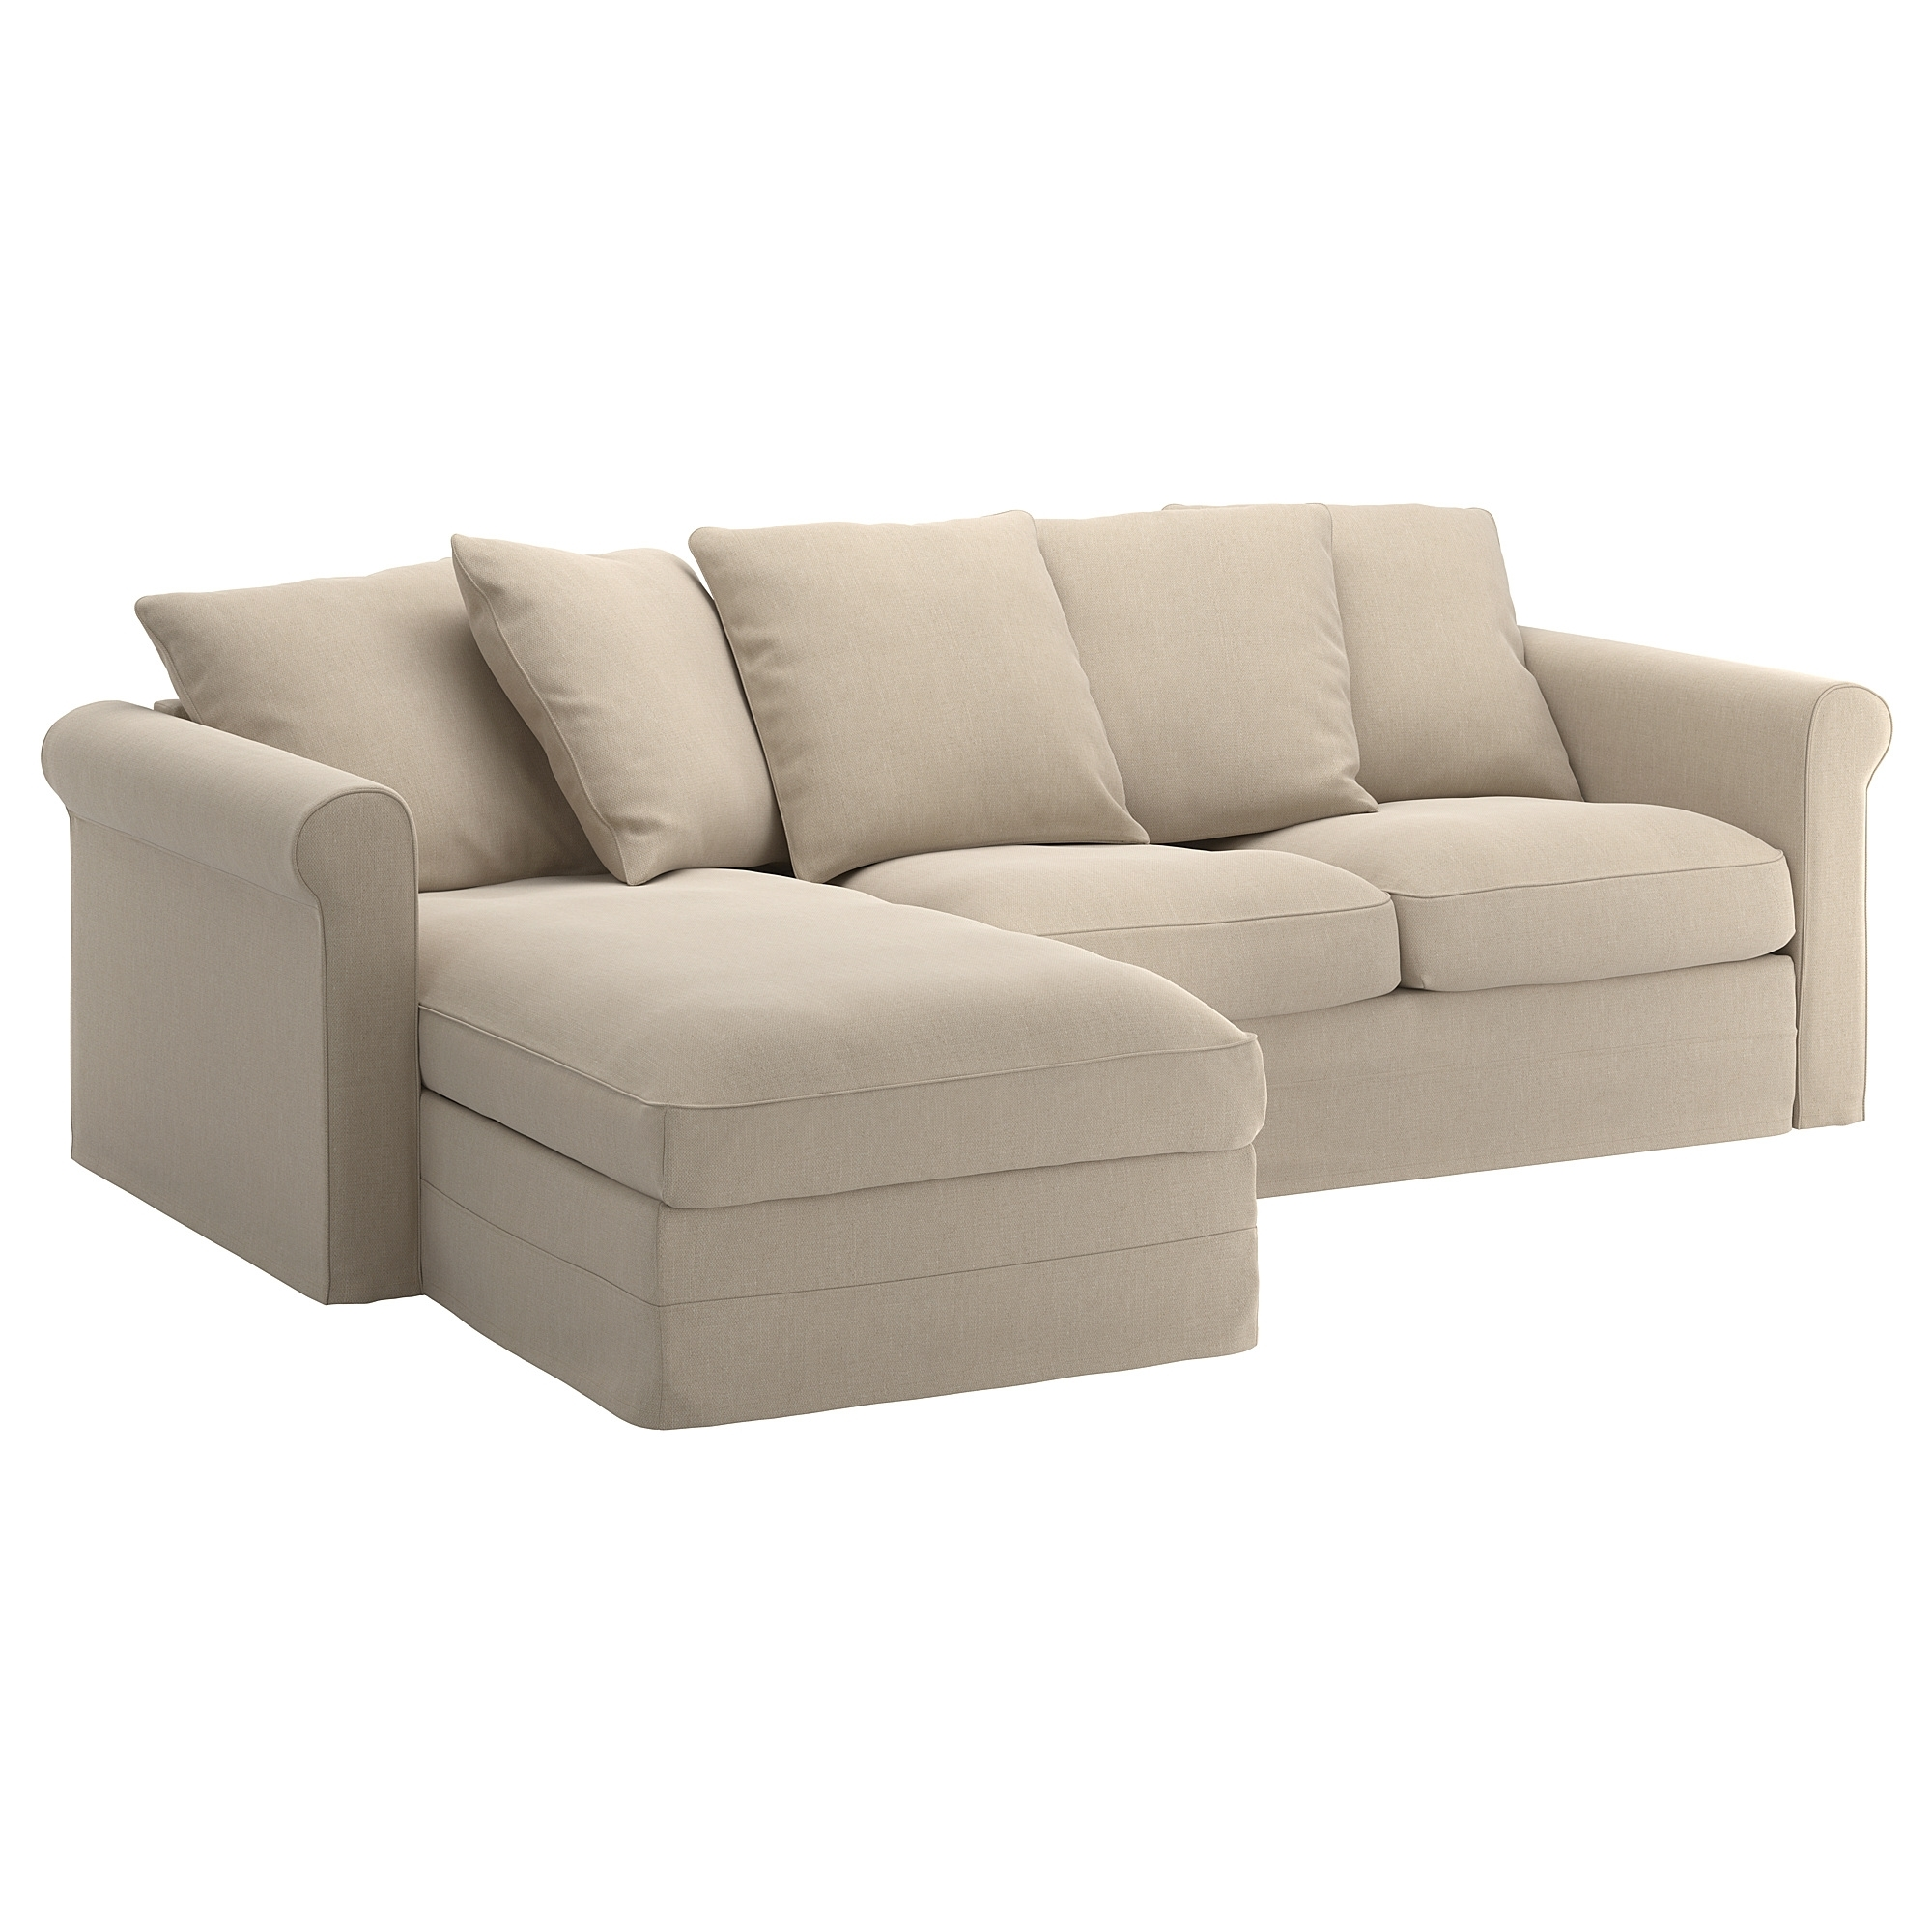 Sofa : 3 Seater Sofa Revit 3 Seater Sofa Removable Covers 3 Seater Intended For Newest Removable Covers Sectional Sofas (View 11 of 15)